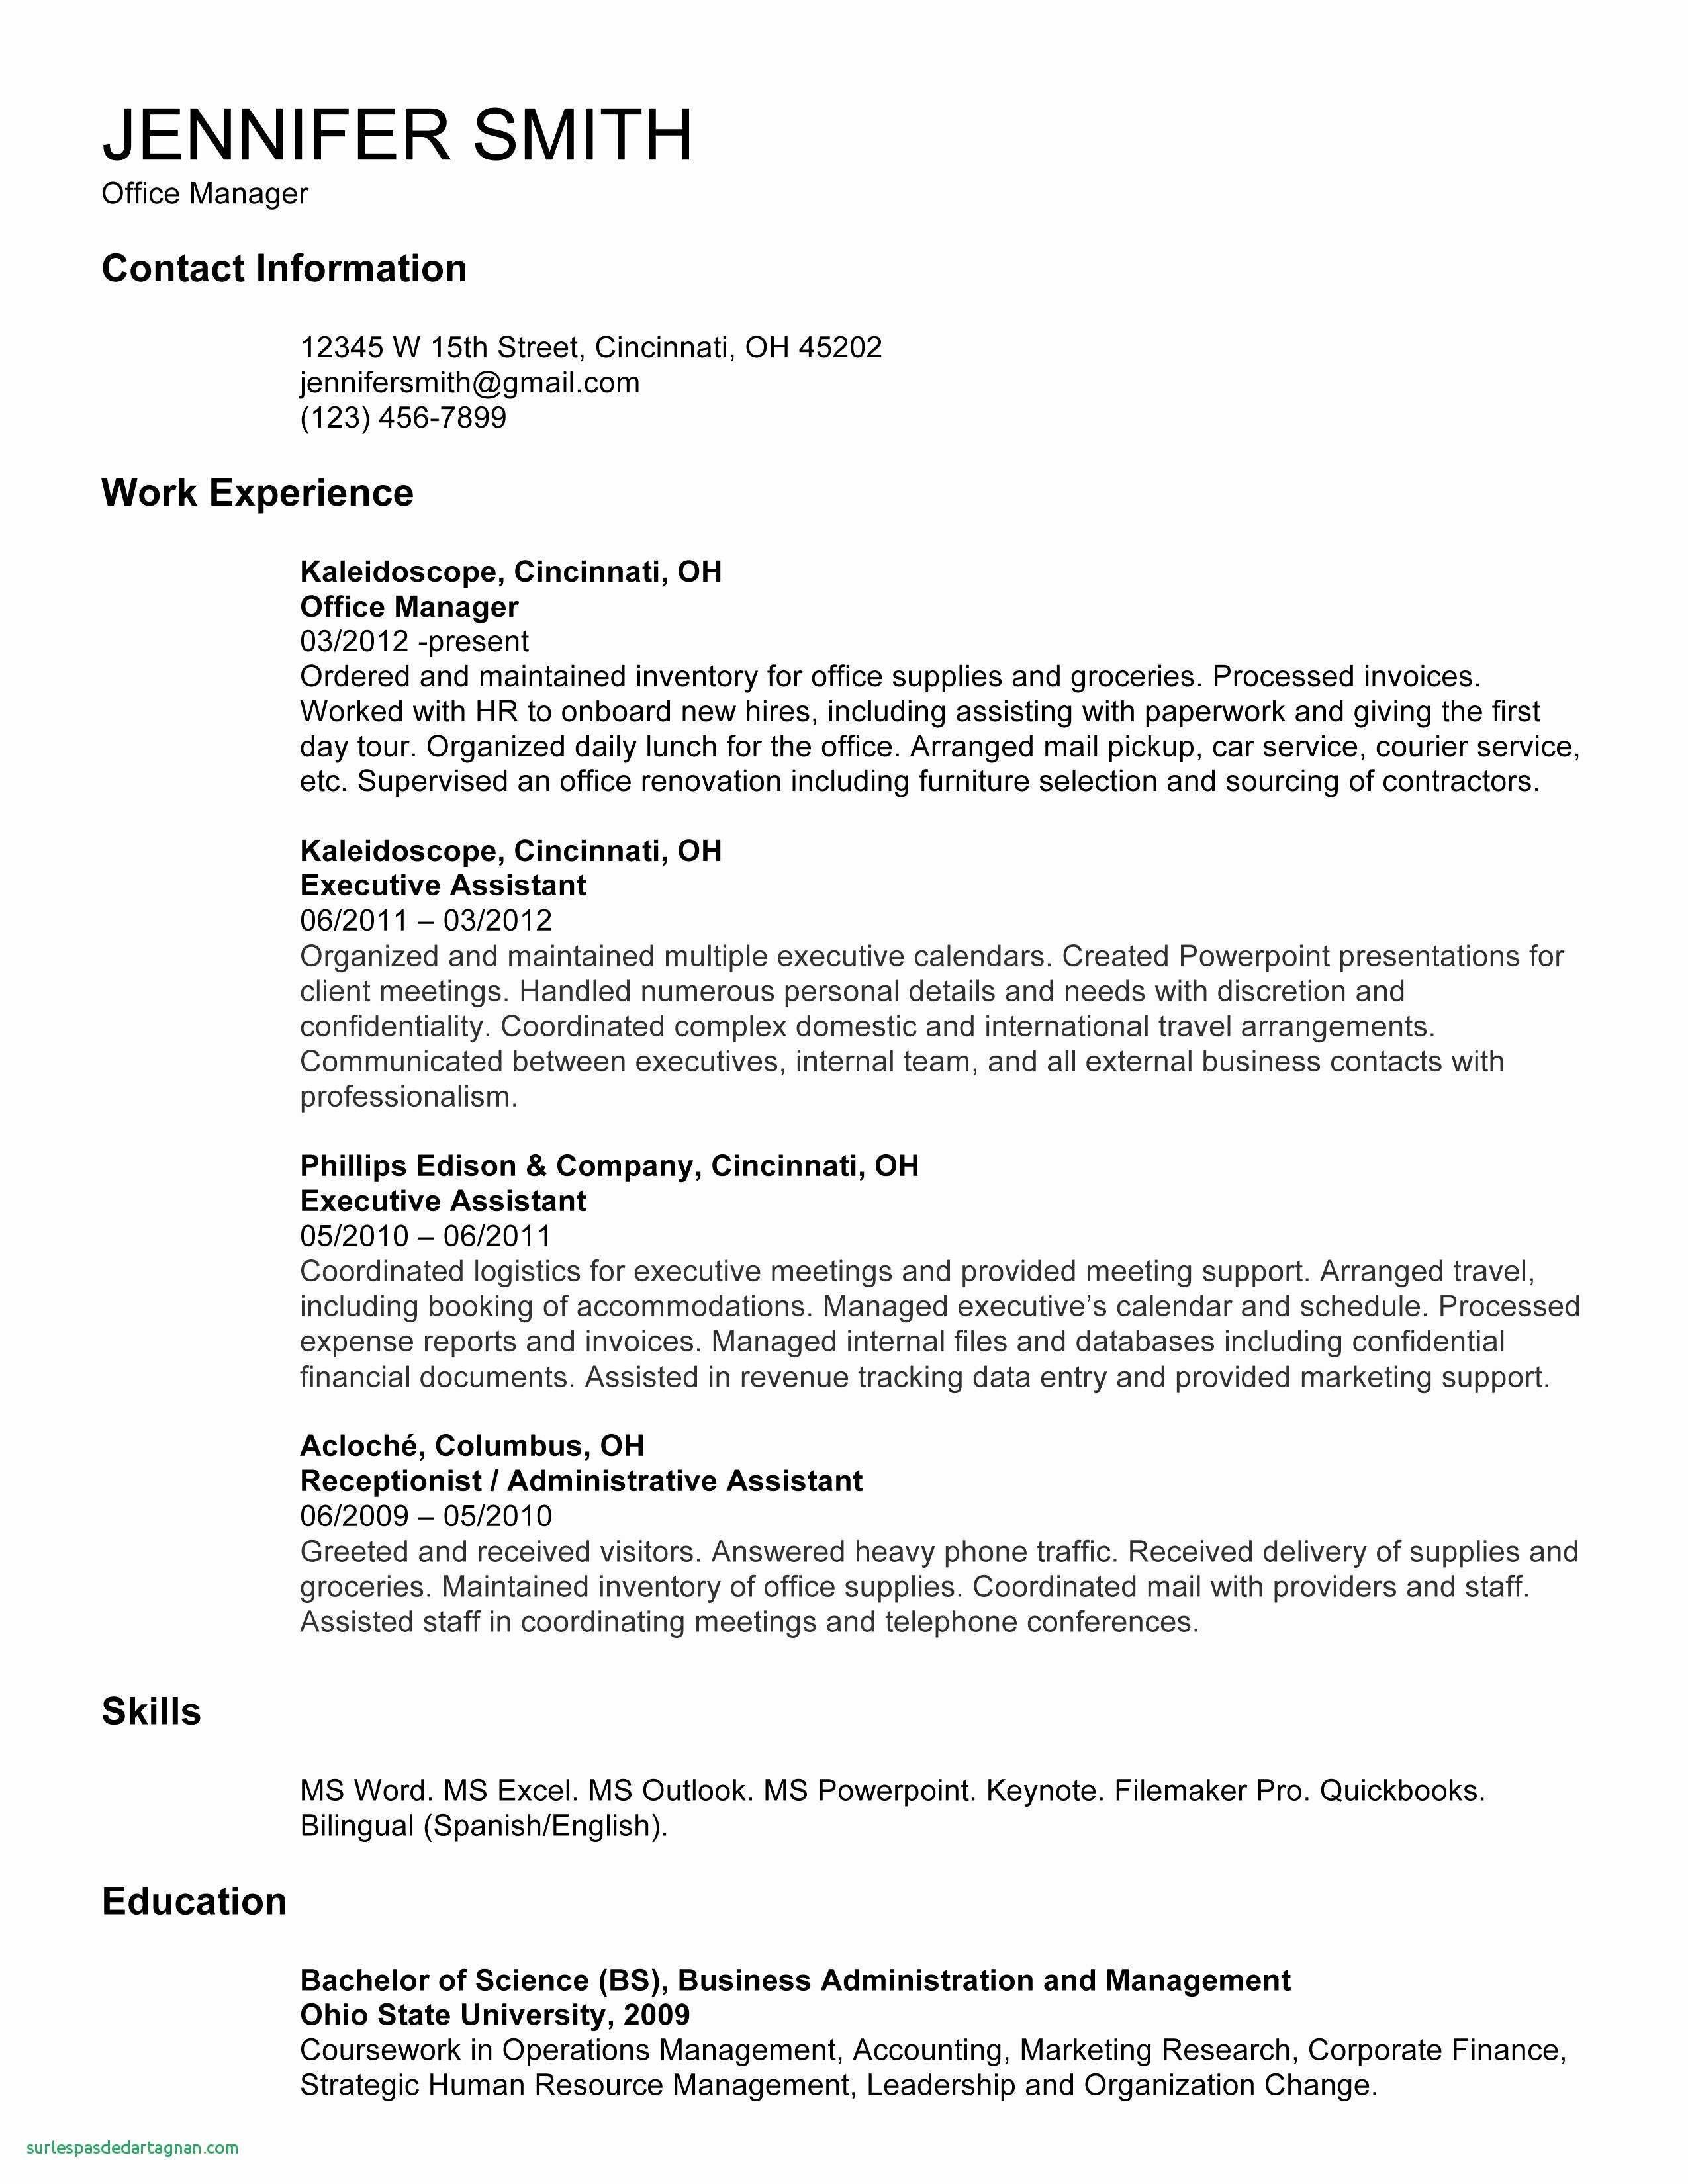 Free Resume Download - Resume Template Download Free Unique ¢Ë†Å¡ Resume Template Download